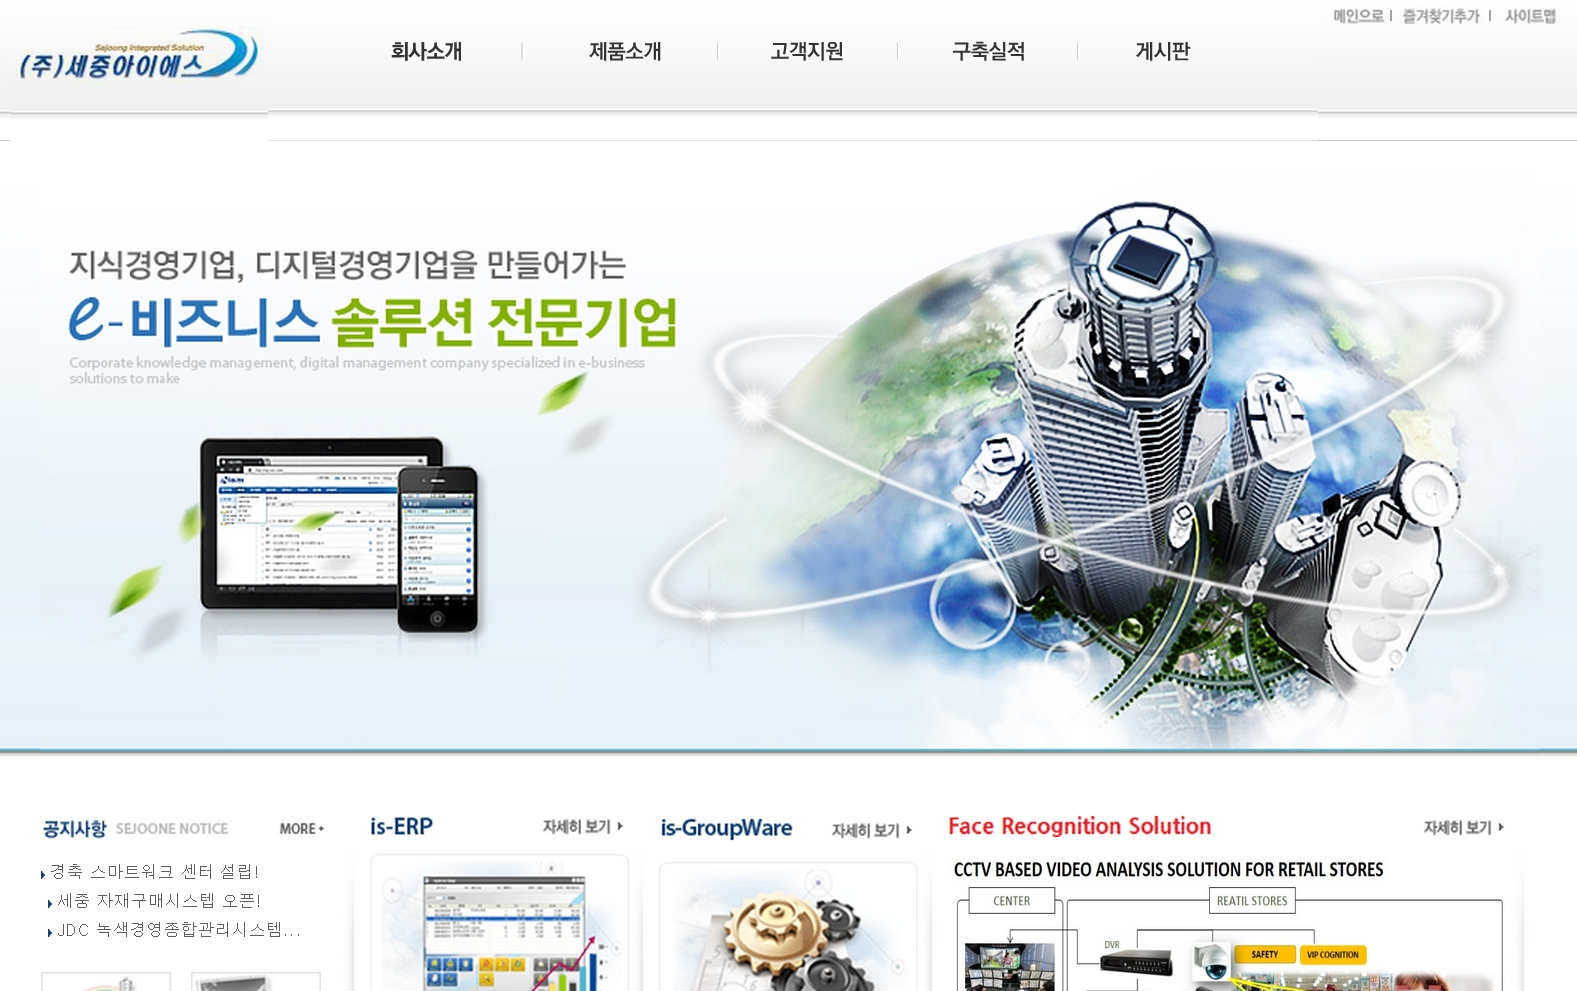 The web site of Sejoong I.S.